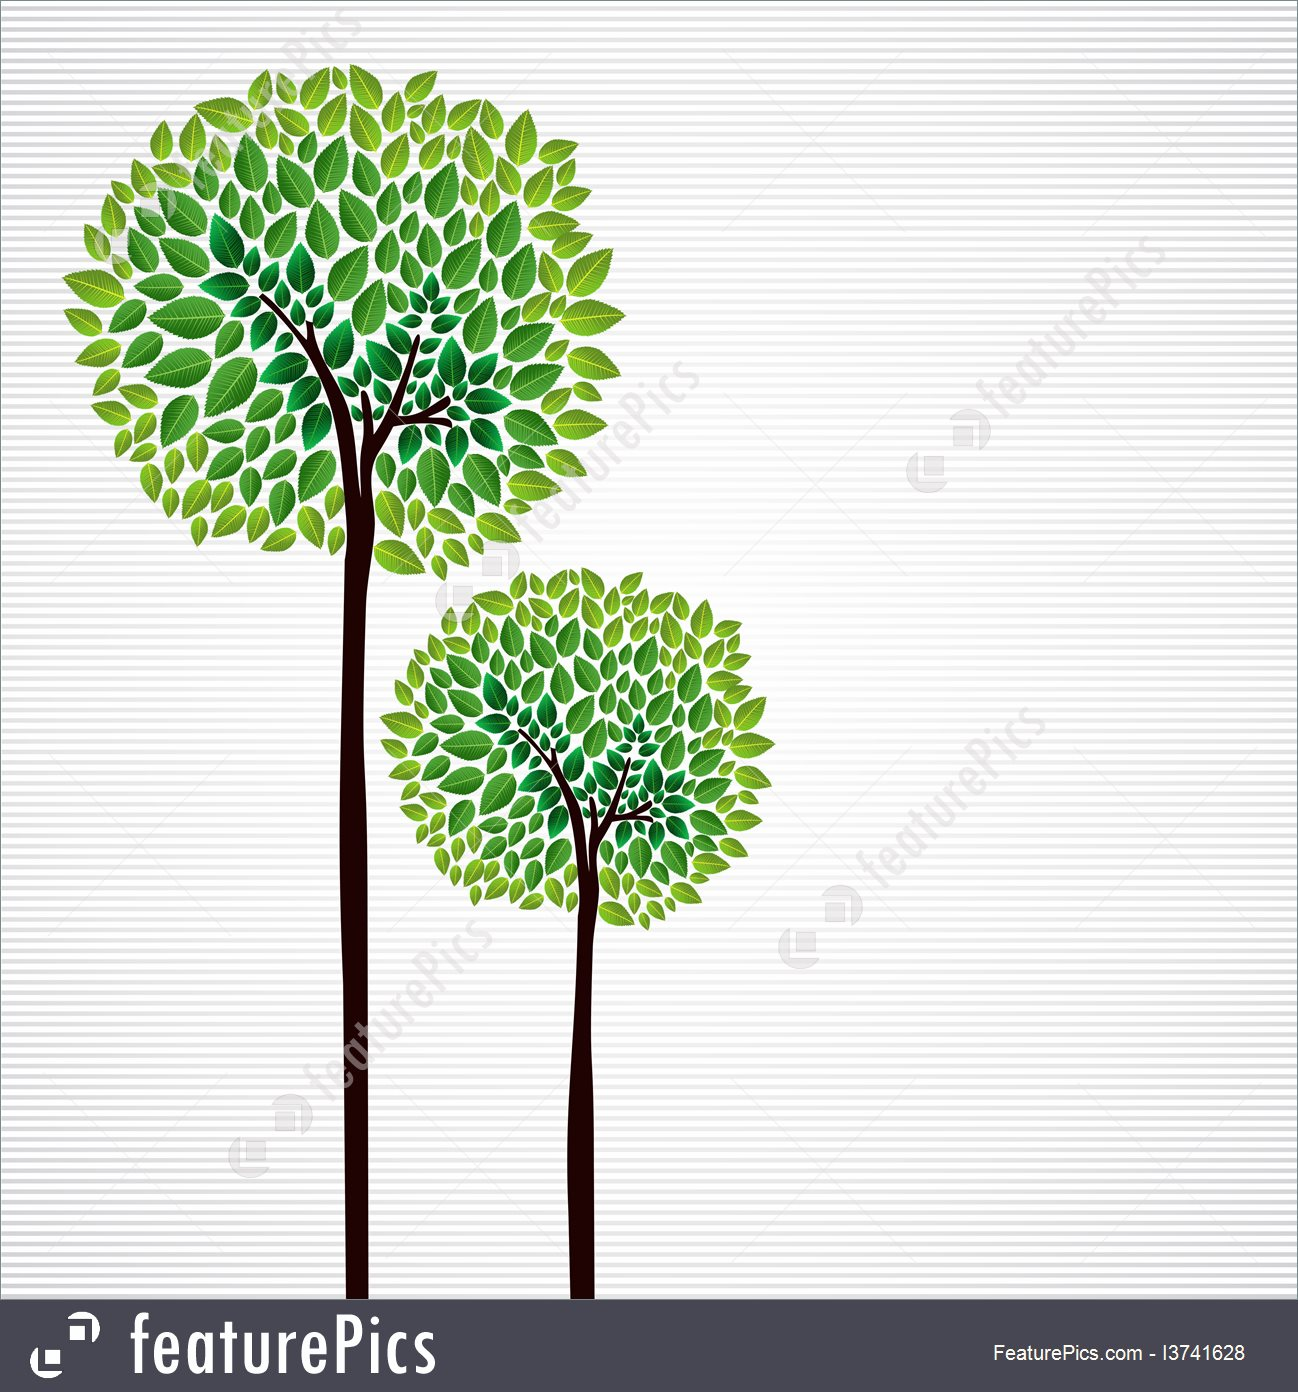 Tree Design Drawing at GetDrawings.com | Free for personal use Tree ...